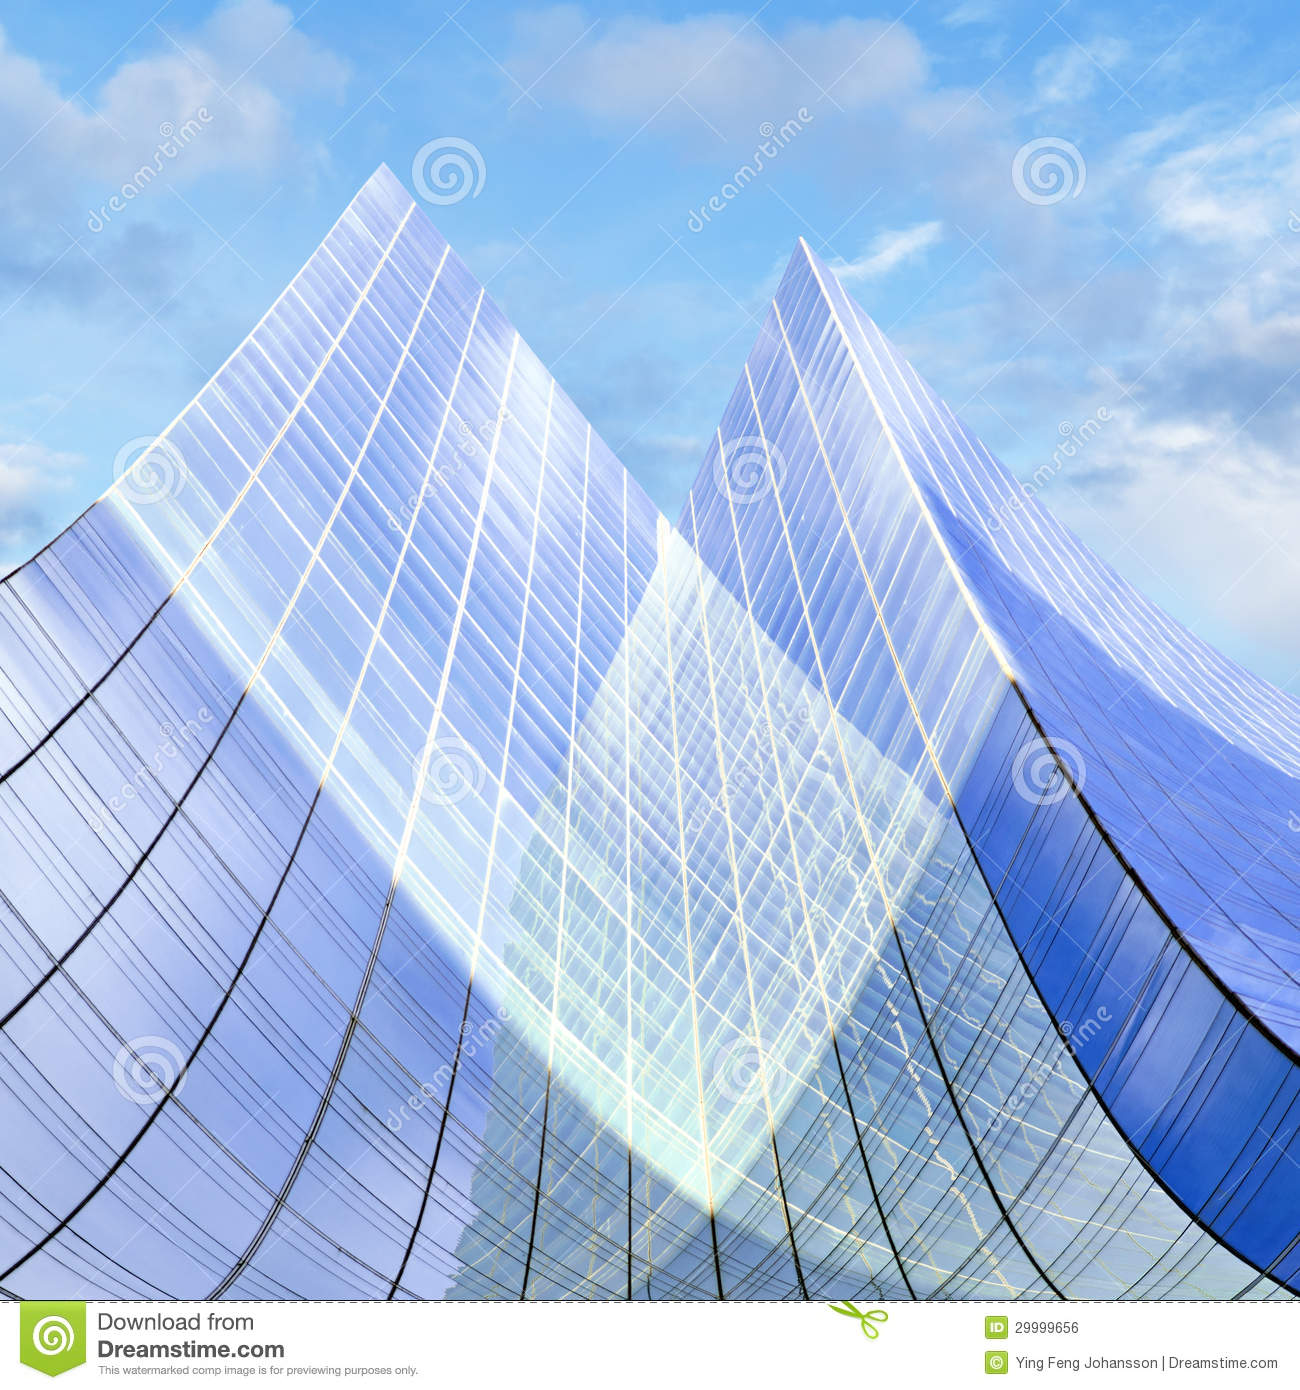 Glass Facade Of Office Building Royalty Free Stock Image: Glass Facade Of Office Building Royalty Free Stock Image